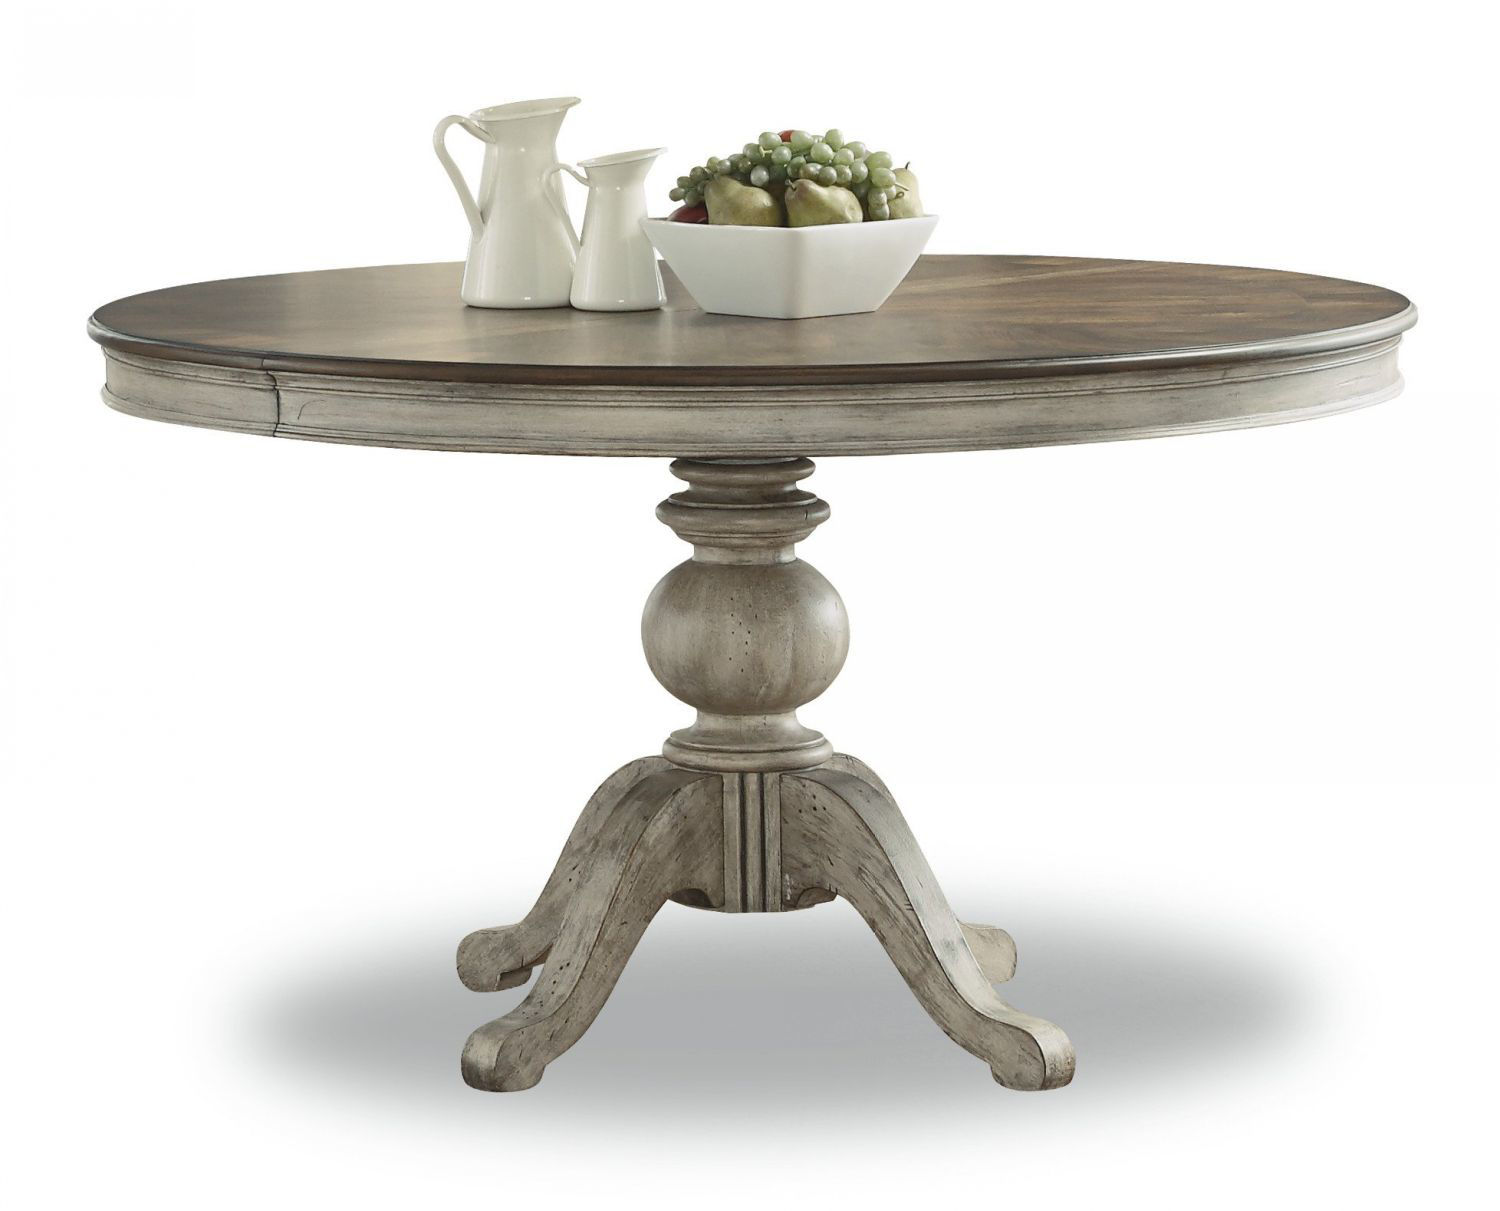 Plymouth Round Pedestal Table By, Pedestal Dining Room Tables